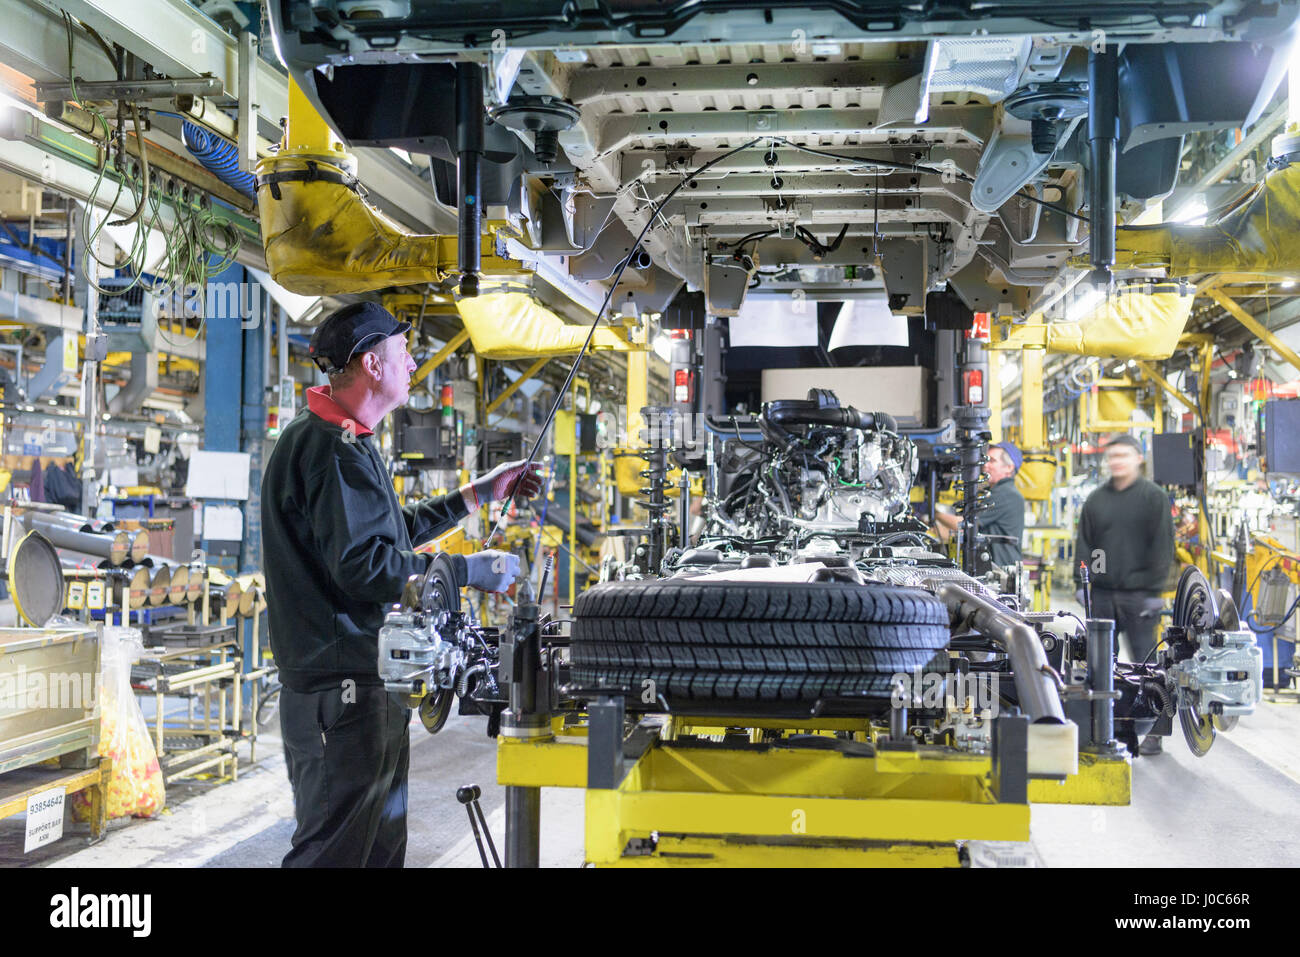 Workers on production line in car factory - Stock Image